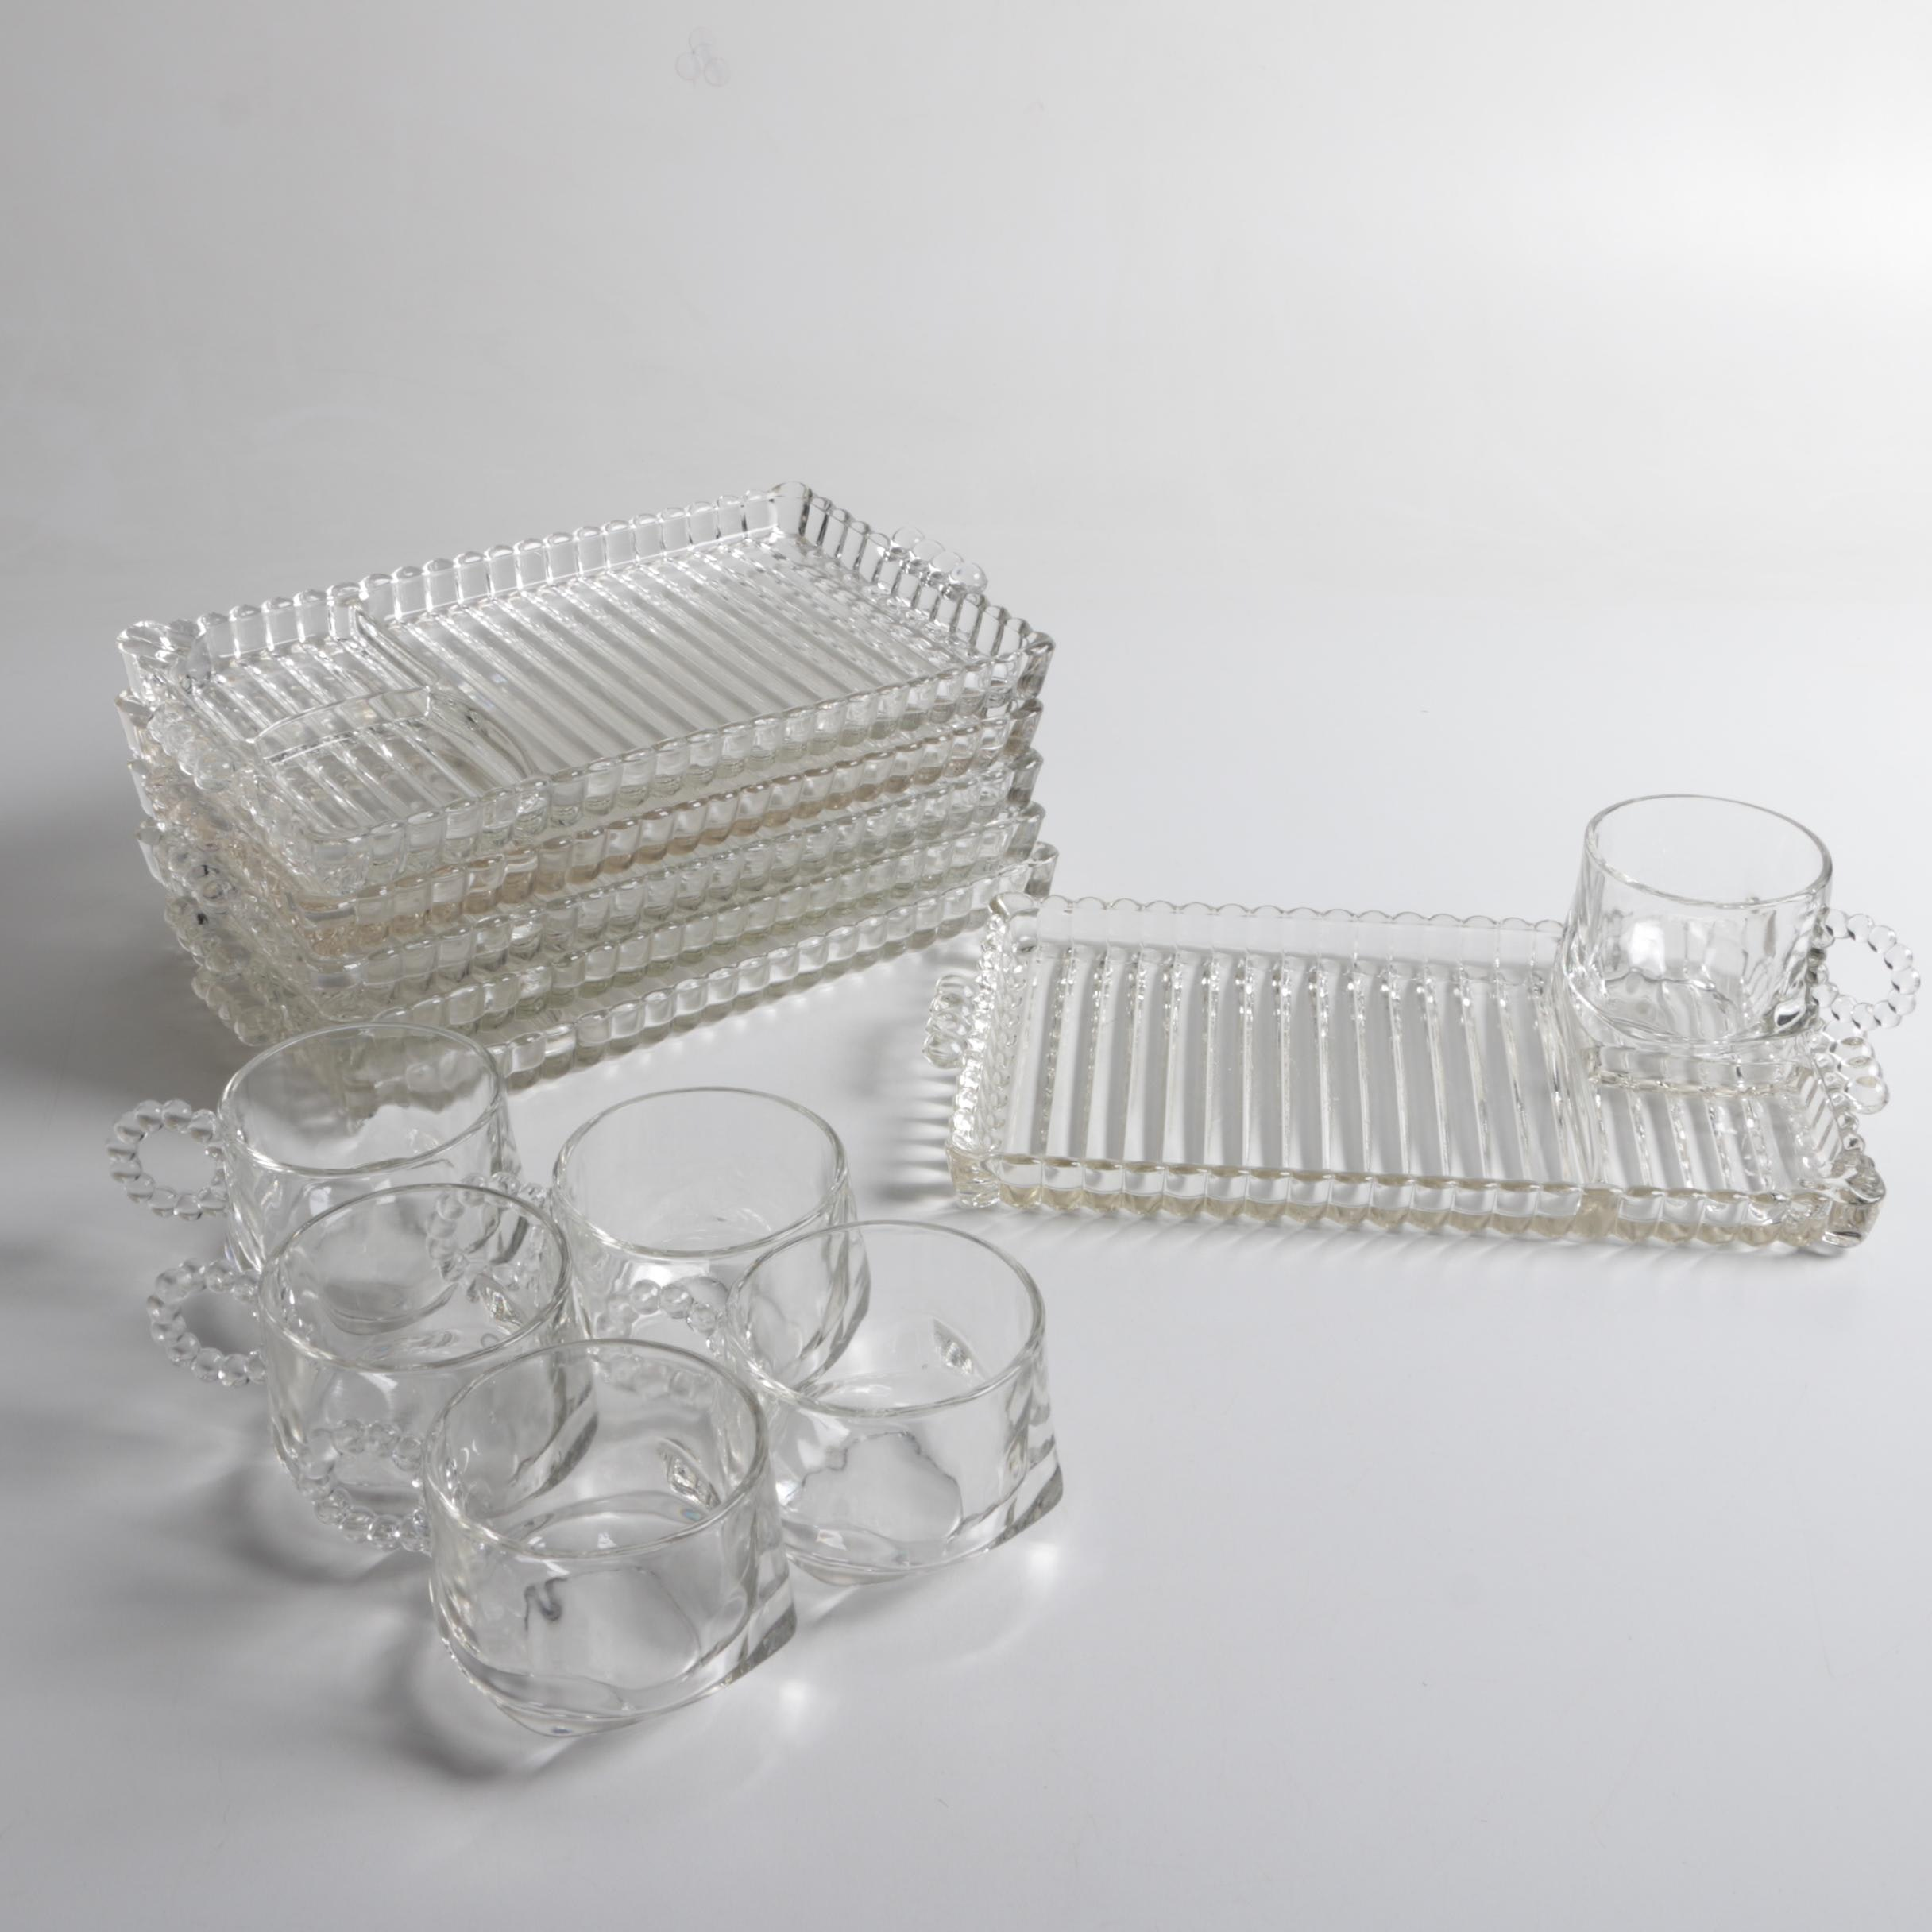 """Mid 20th Century Hazel Atlas Glass Co. """"Orchard Crystal"""" Party Tray and Cup Sets"""